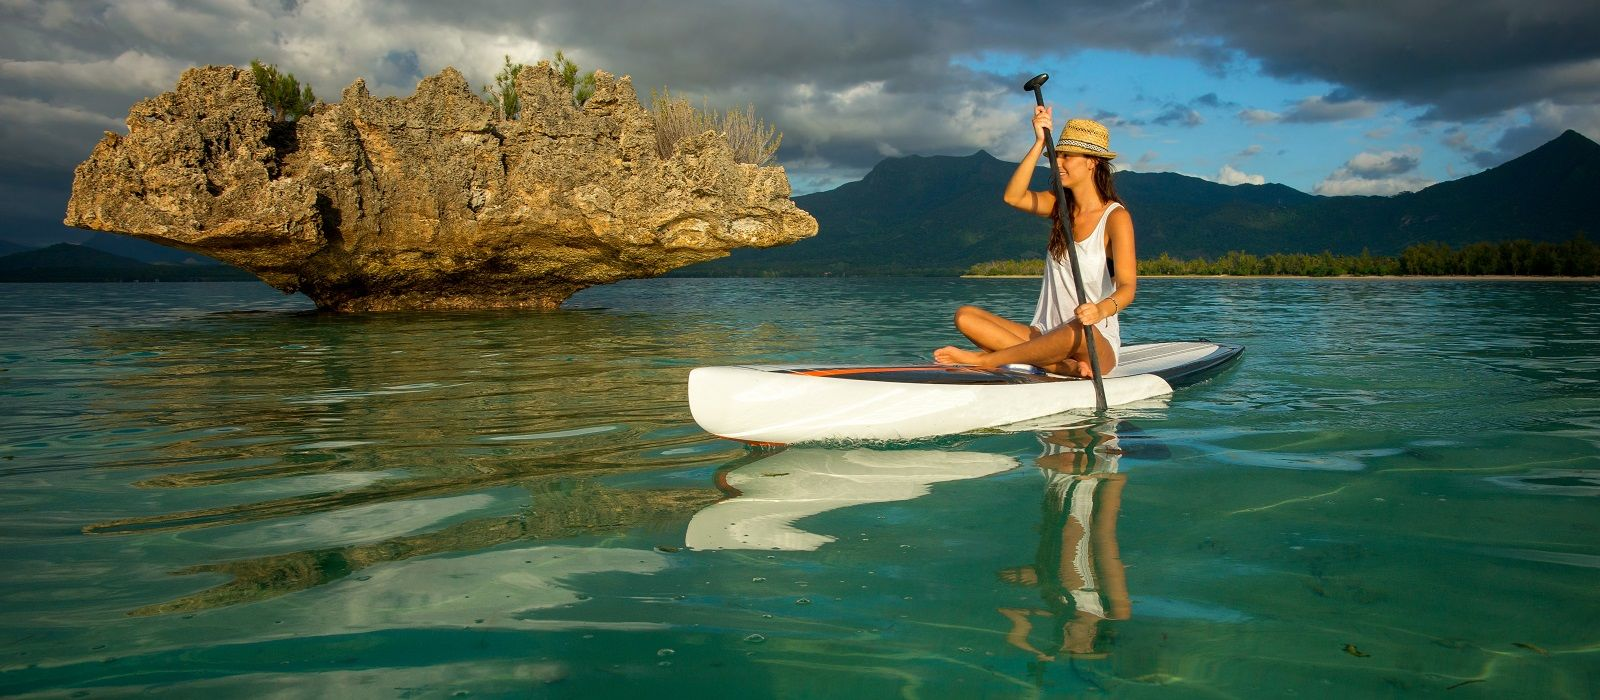 Mauritius Tour Plan Your Beach Vacation With Enchanting Travels